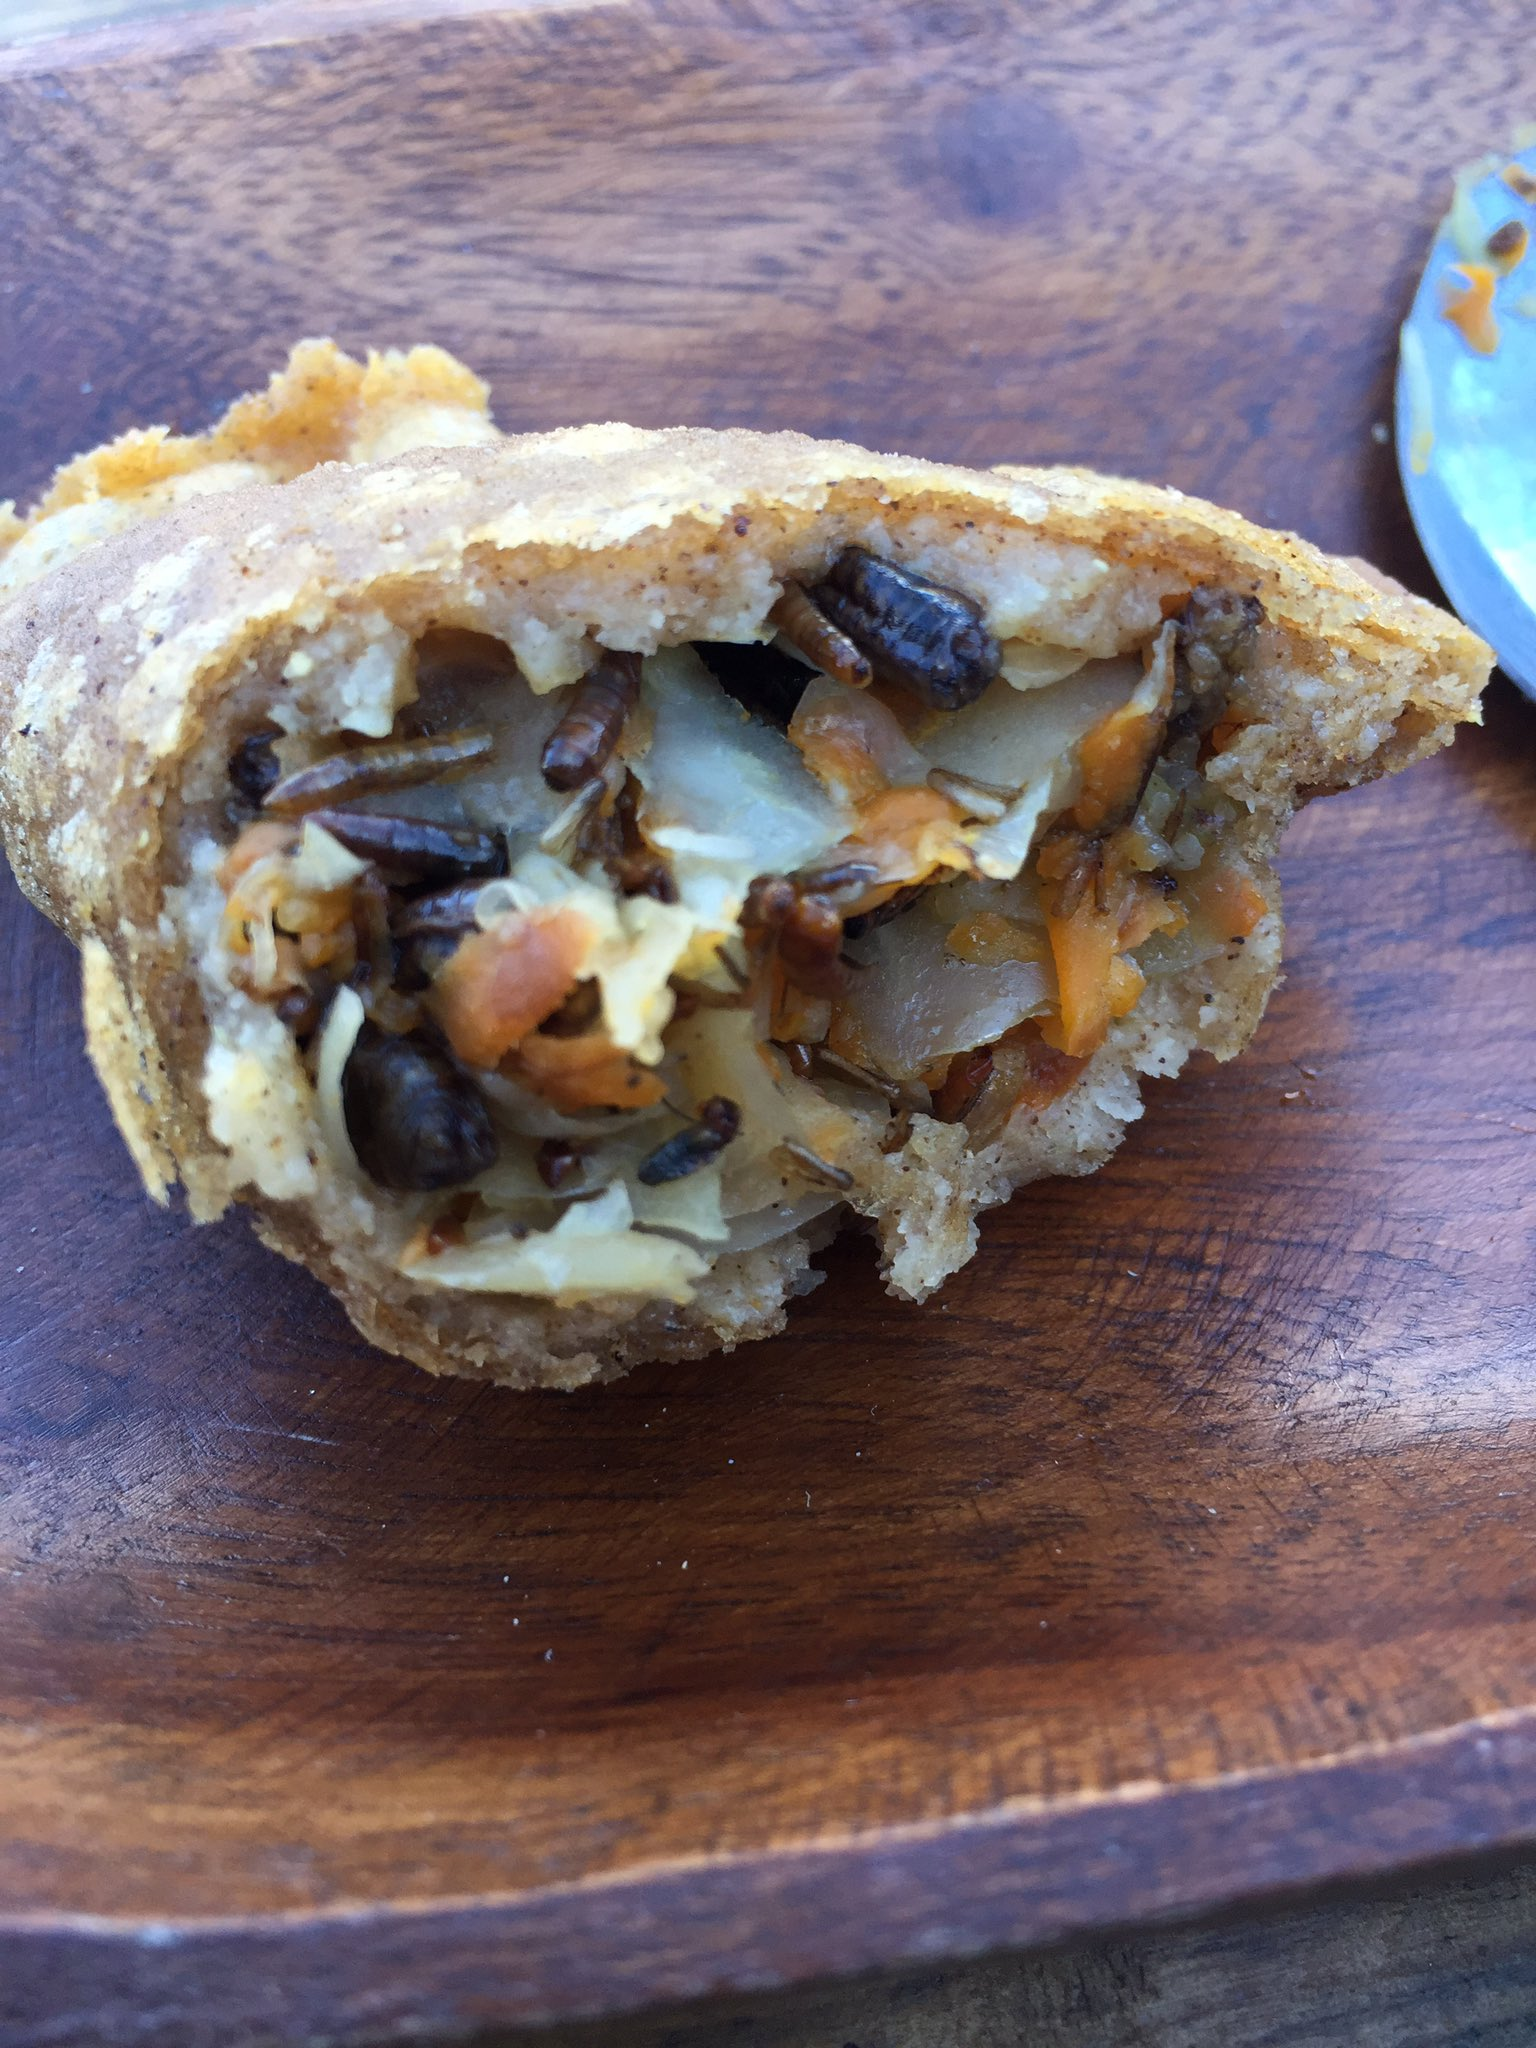 Cricket and mealworm empanadas from heaven!! Check out Colombian Street Food owned by @Cookie_Martinez to get yours! #edibleinsects #weid https://t.co/3CoHs4I8Wj